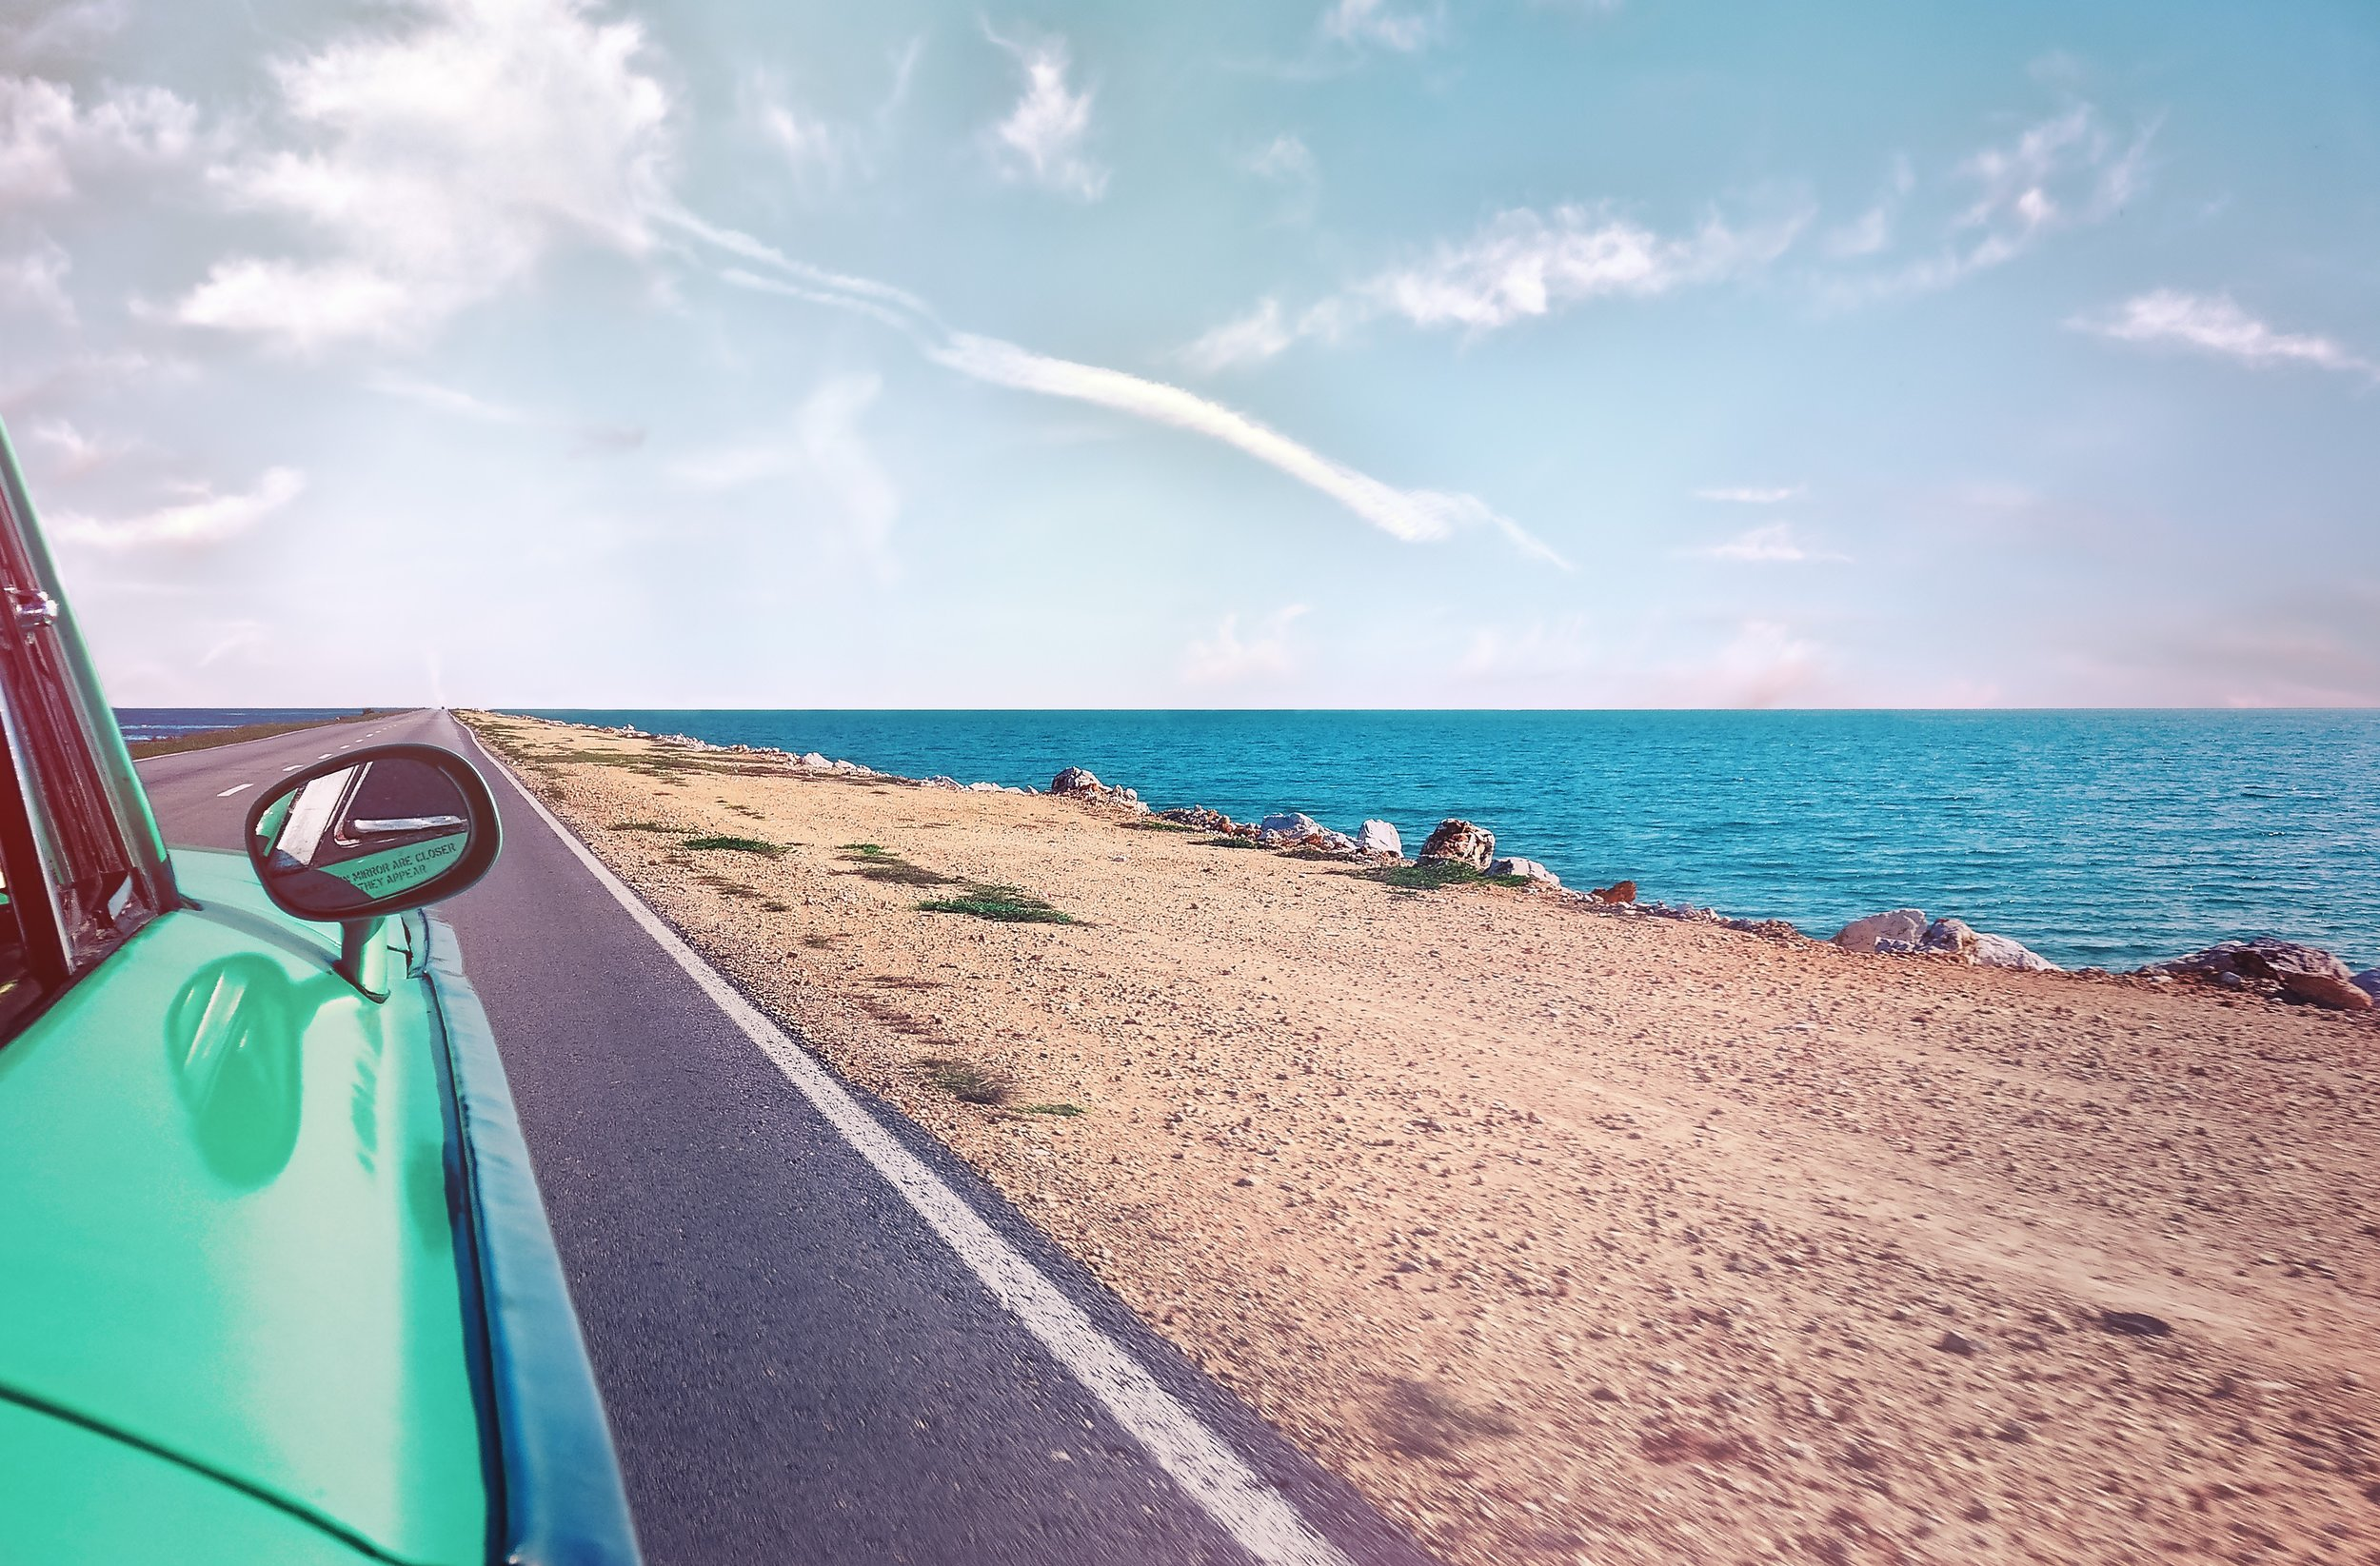 - If you're planning to use your car's AC to keep yourself cool through the rest of the summer – and the summer-like weeks in September and October – here are some tips. Use them to get the most out of your vehicle's vents while minimizing the impact on your car's fuel efficiency.